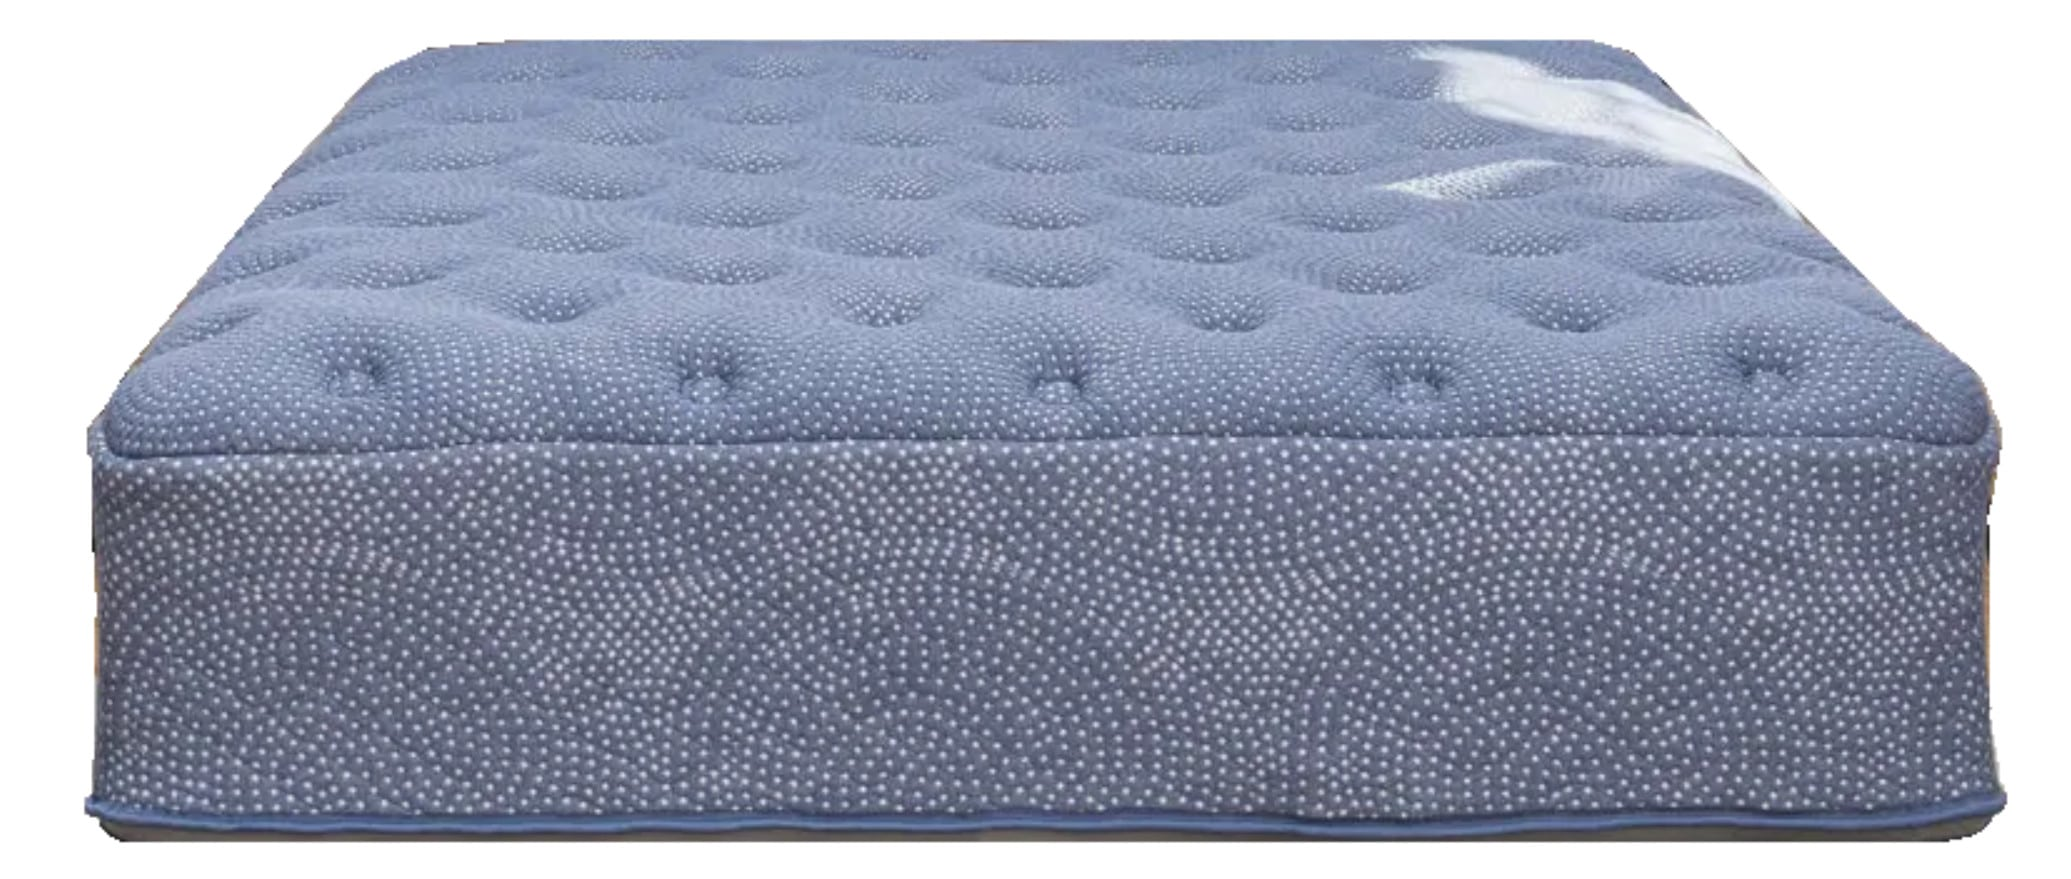 luuf hybrid mattress for big people